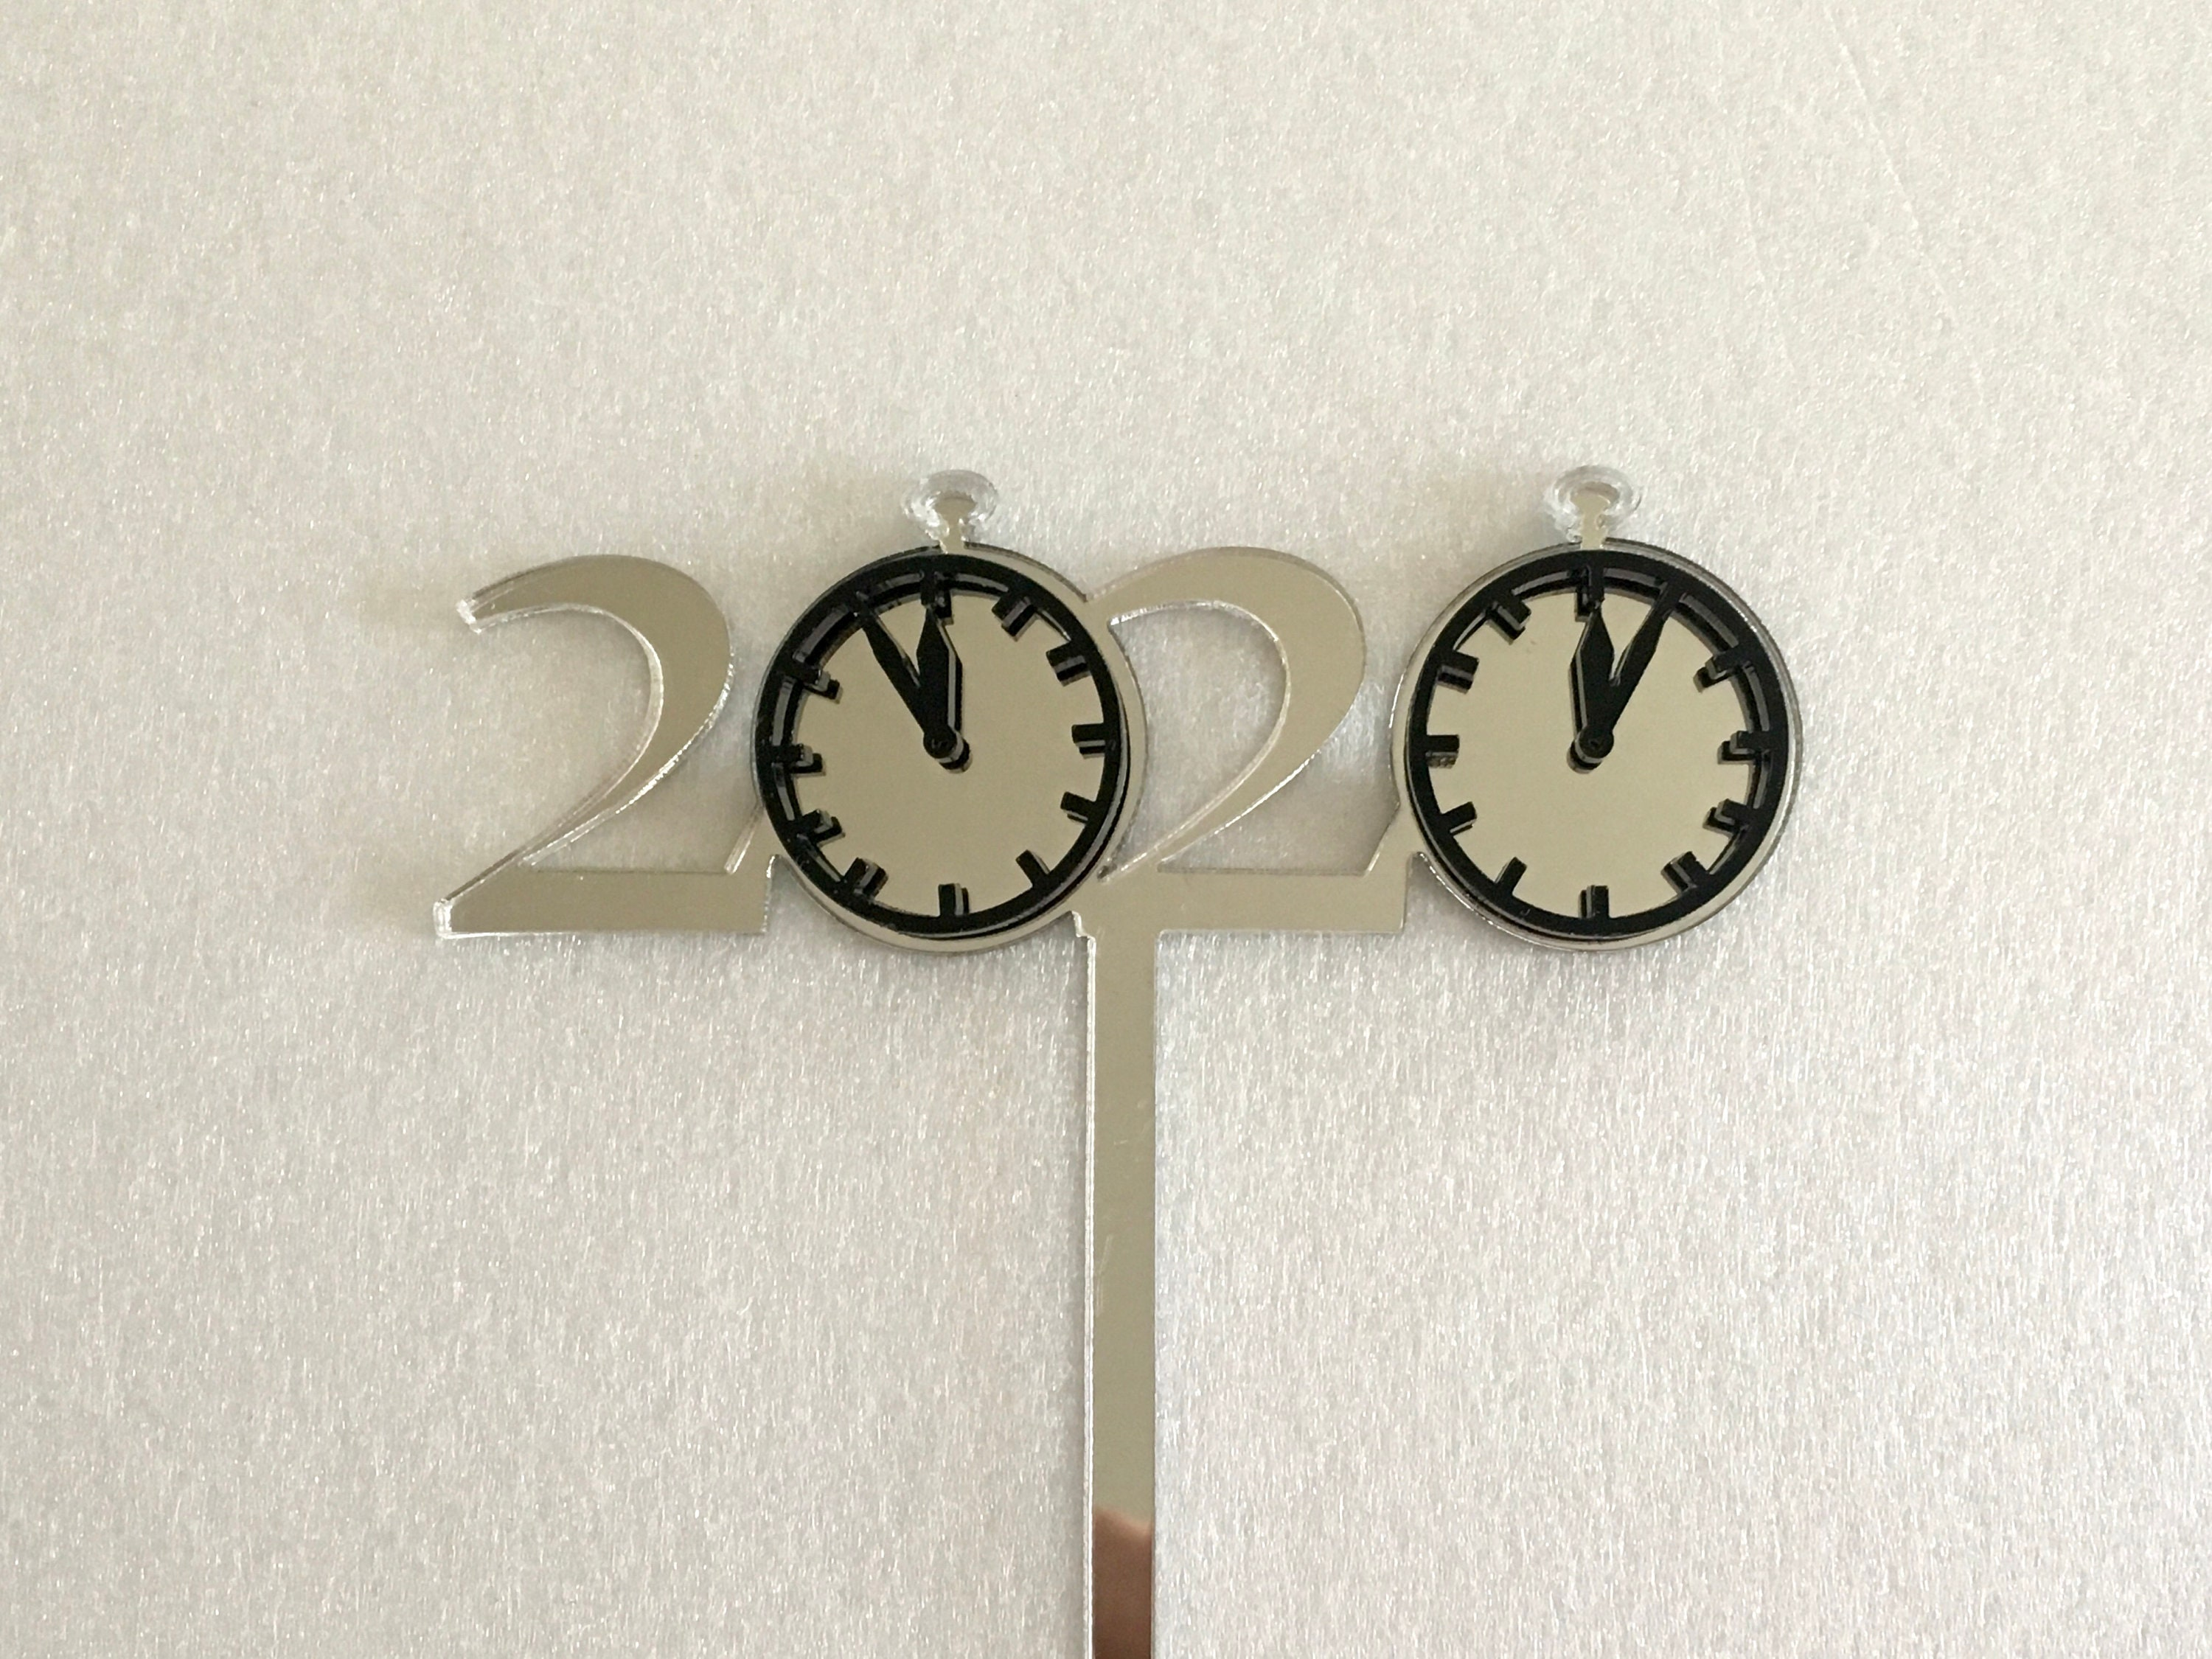 2020 New Year Celebration Cupcake Toppers 20s Theme Cake ...